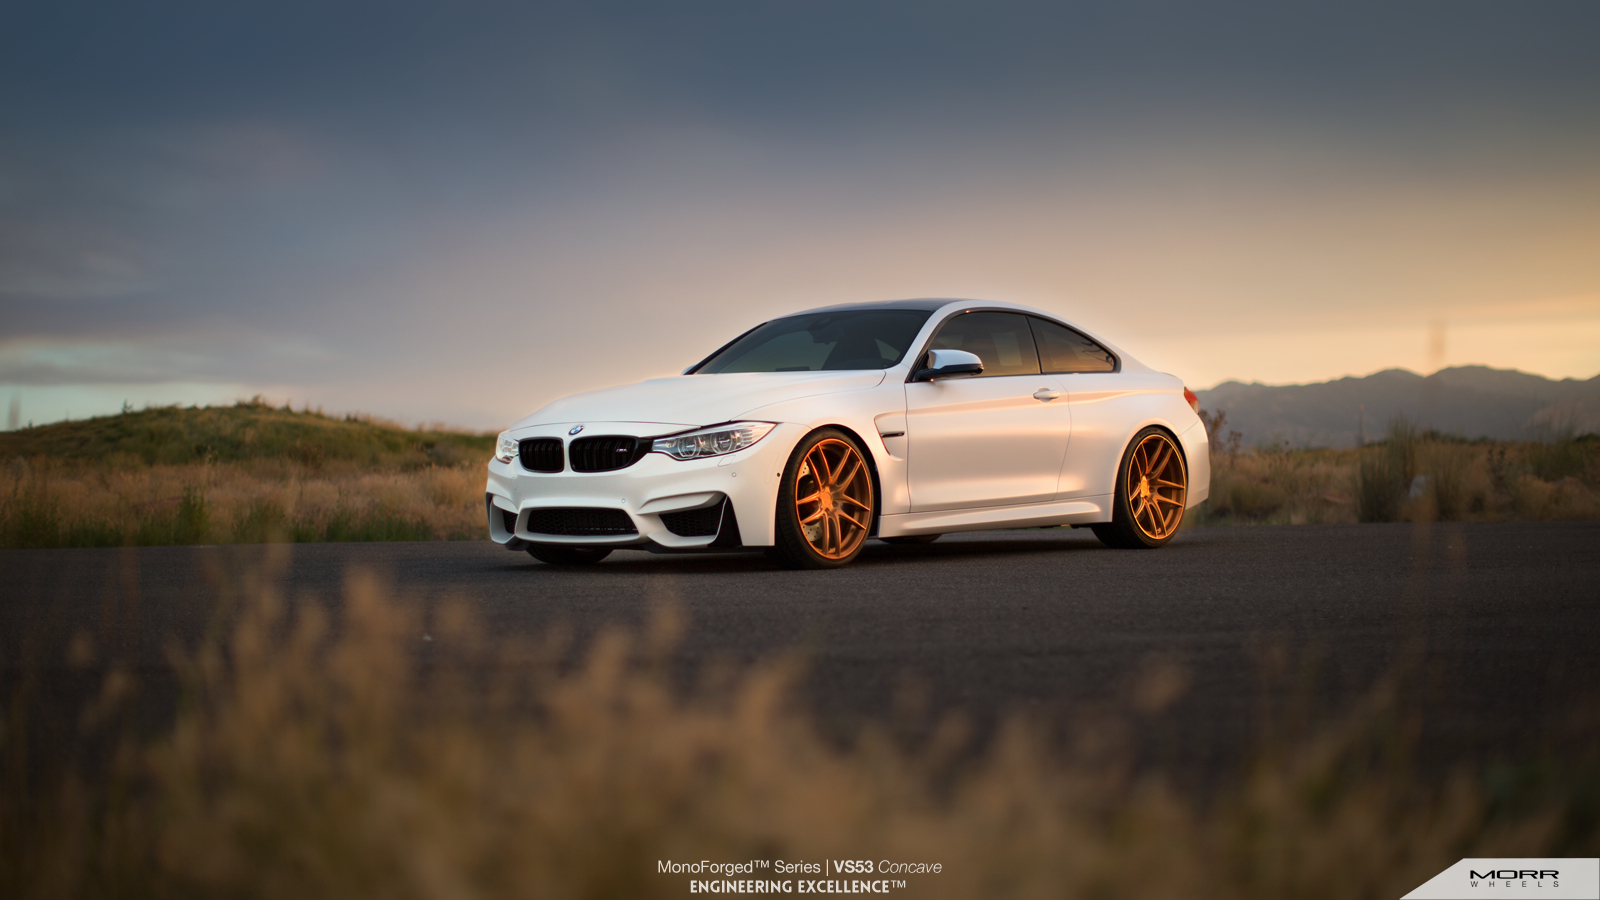 Bmw M4 Looking Sharp On Morr Wheels With M Performance